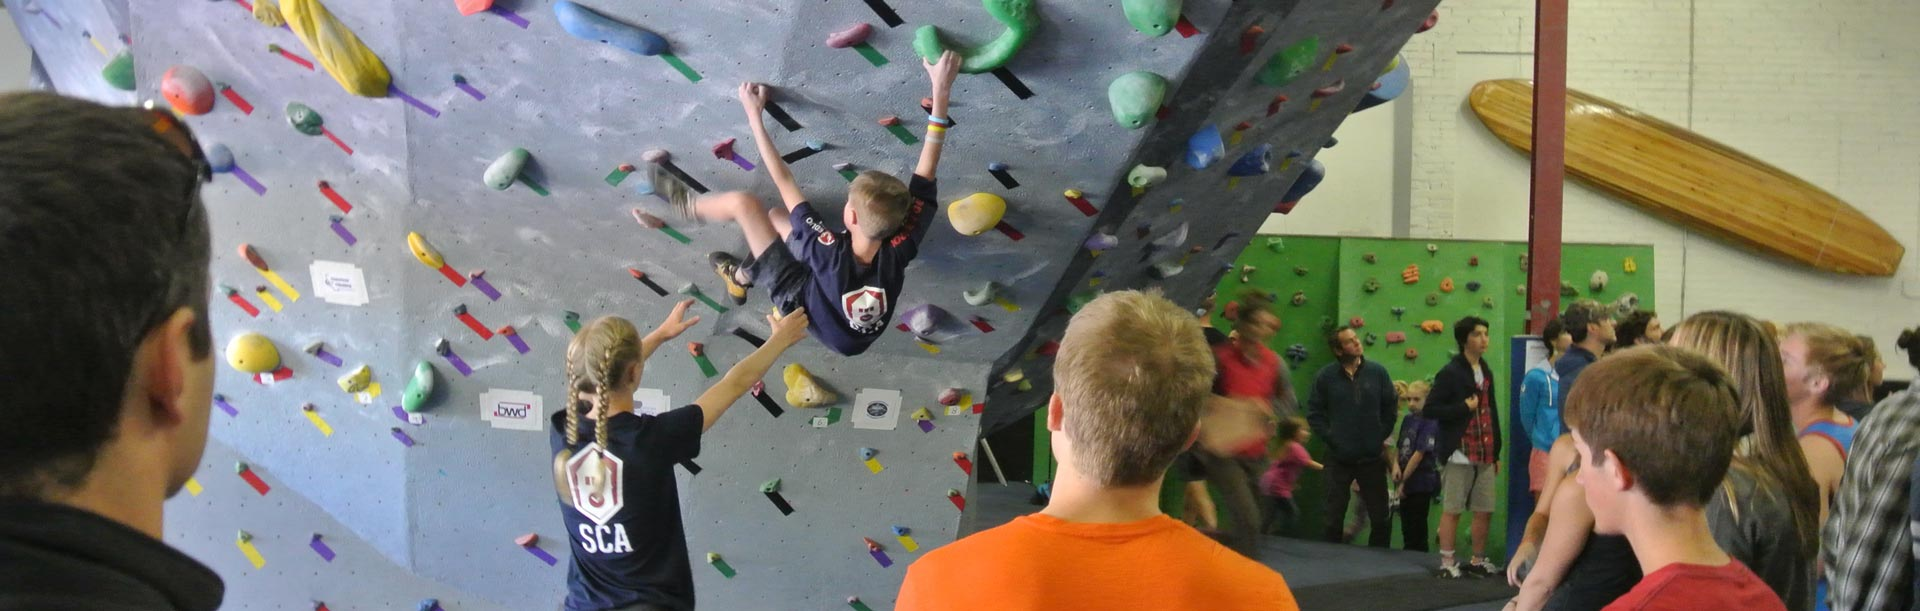 Freestone Climing Center - indoor climbing gym - photo of a climber spotting another climber.